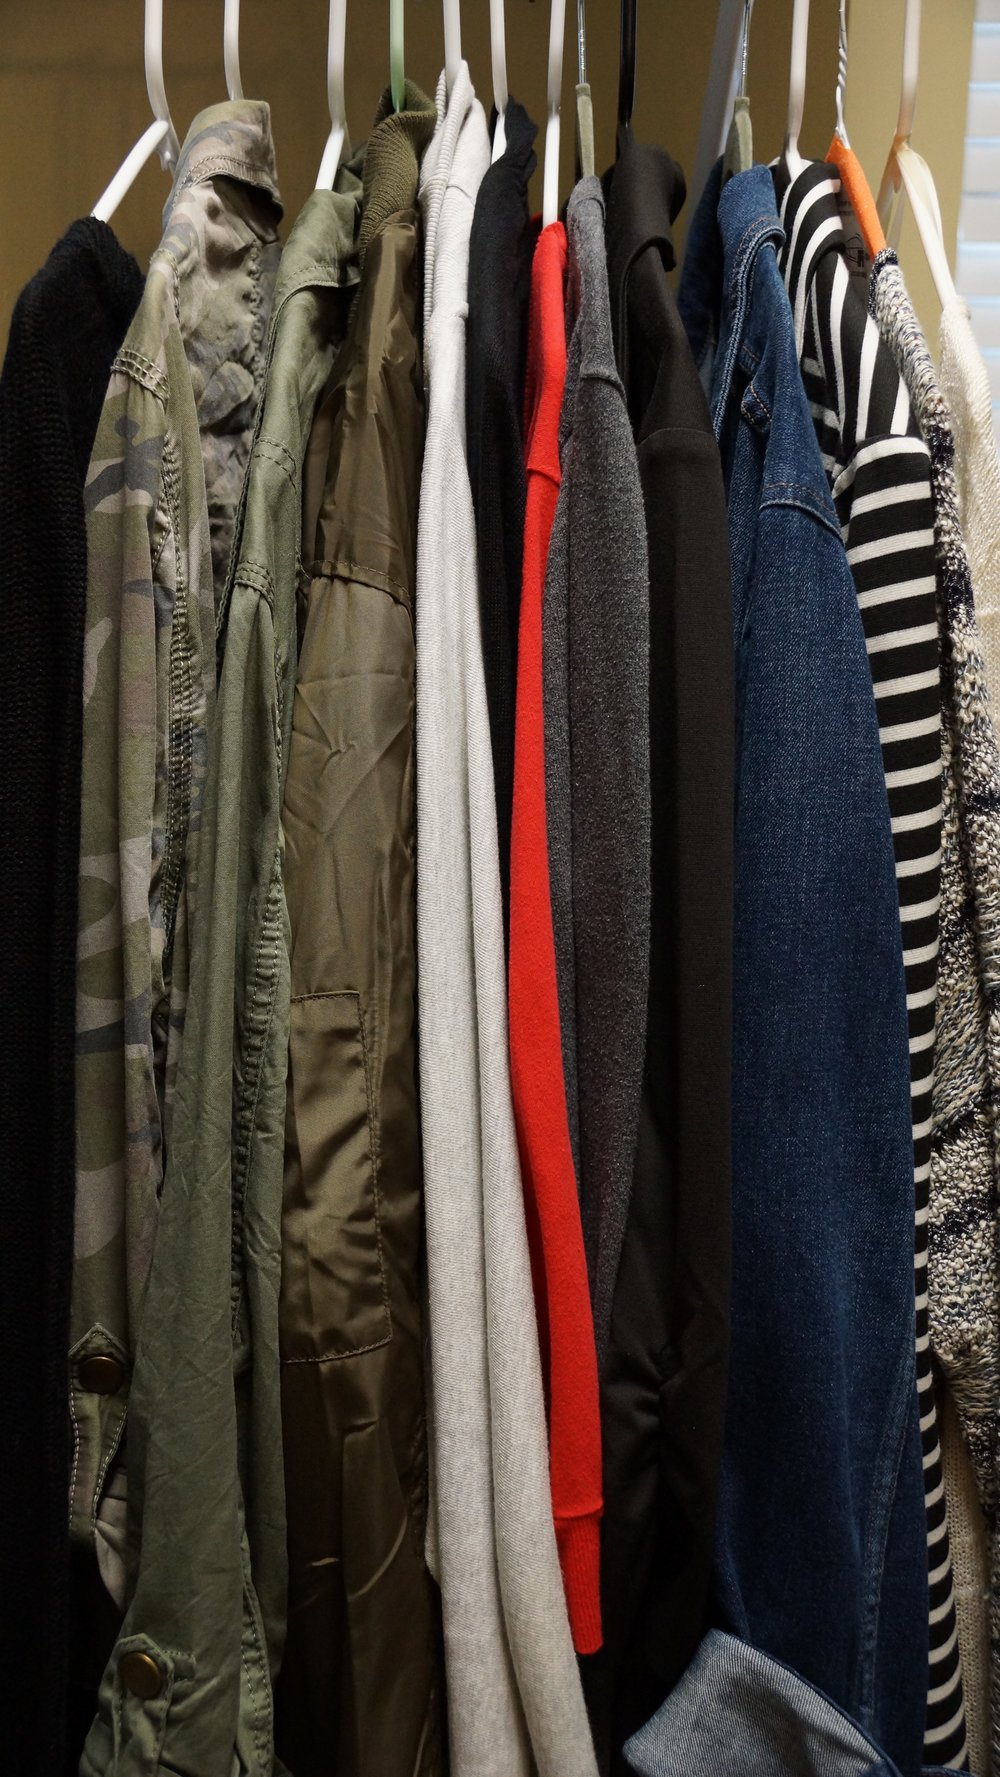 Did I mention I like to layer??  These are some of my jackets and cardigans.